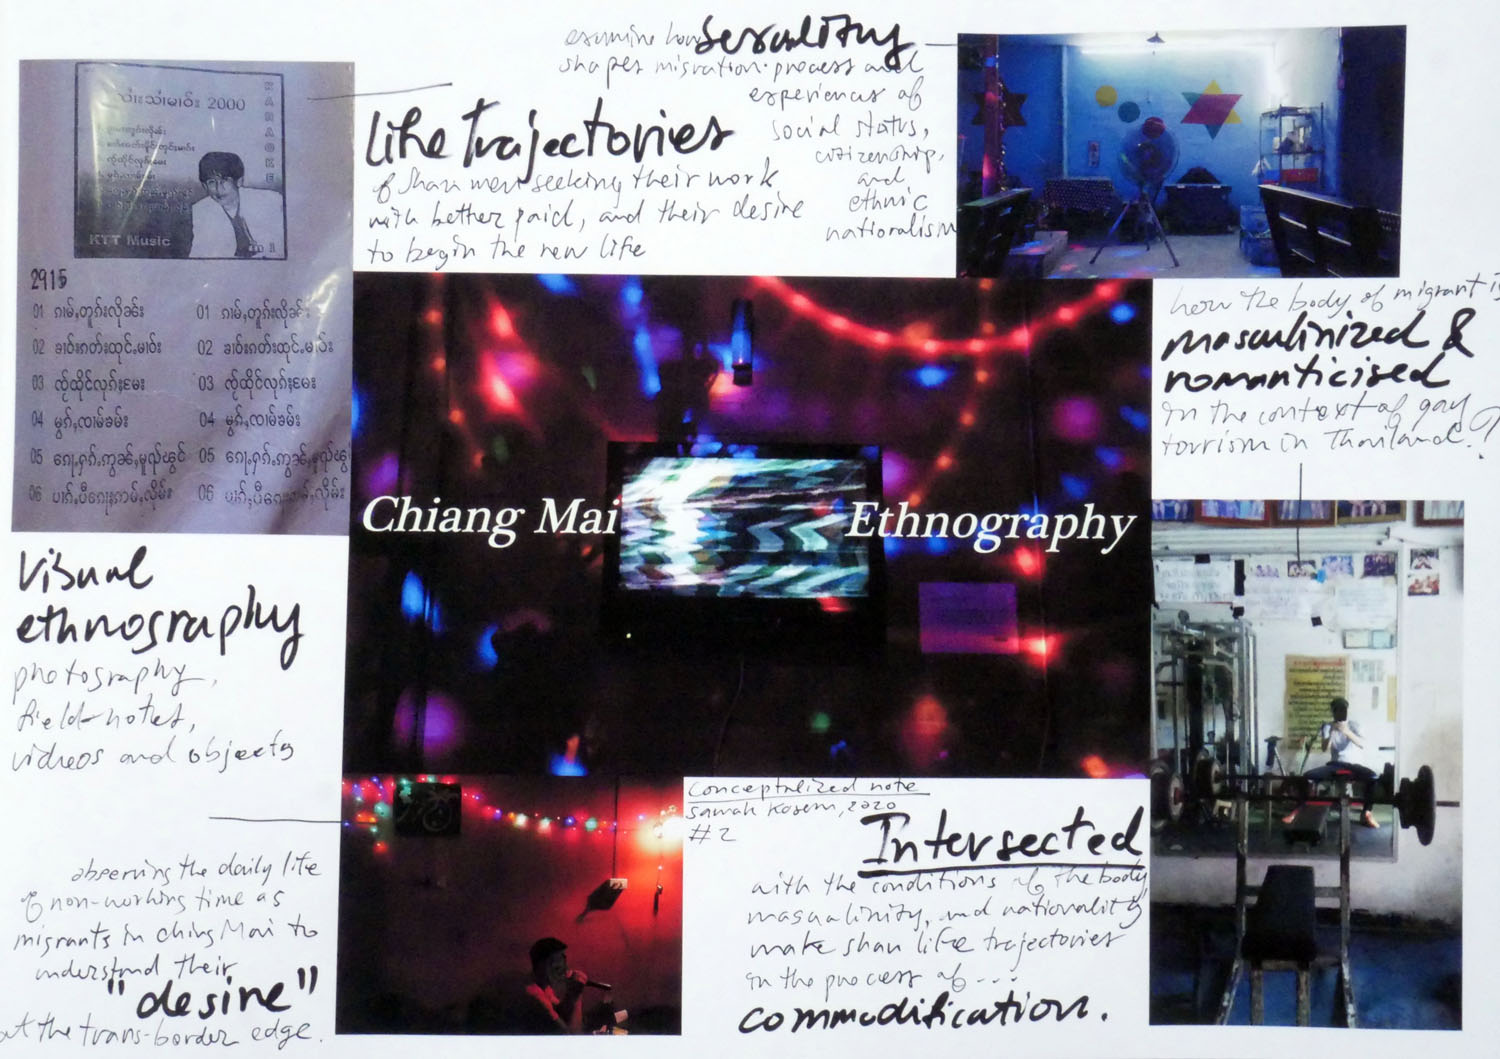 Borders re/make Bodies: Chiang Mai Ethnography - Conceptualising Borders / Bodies No. 2